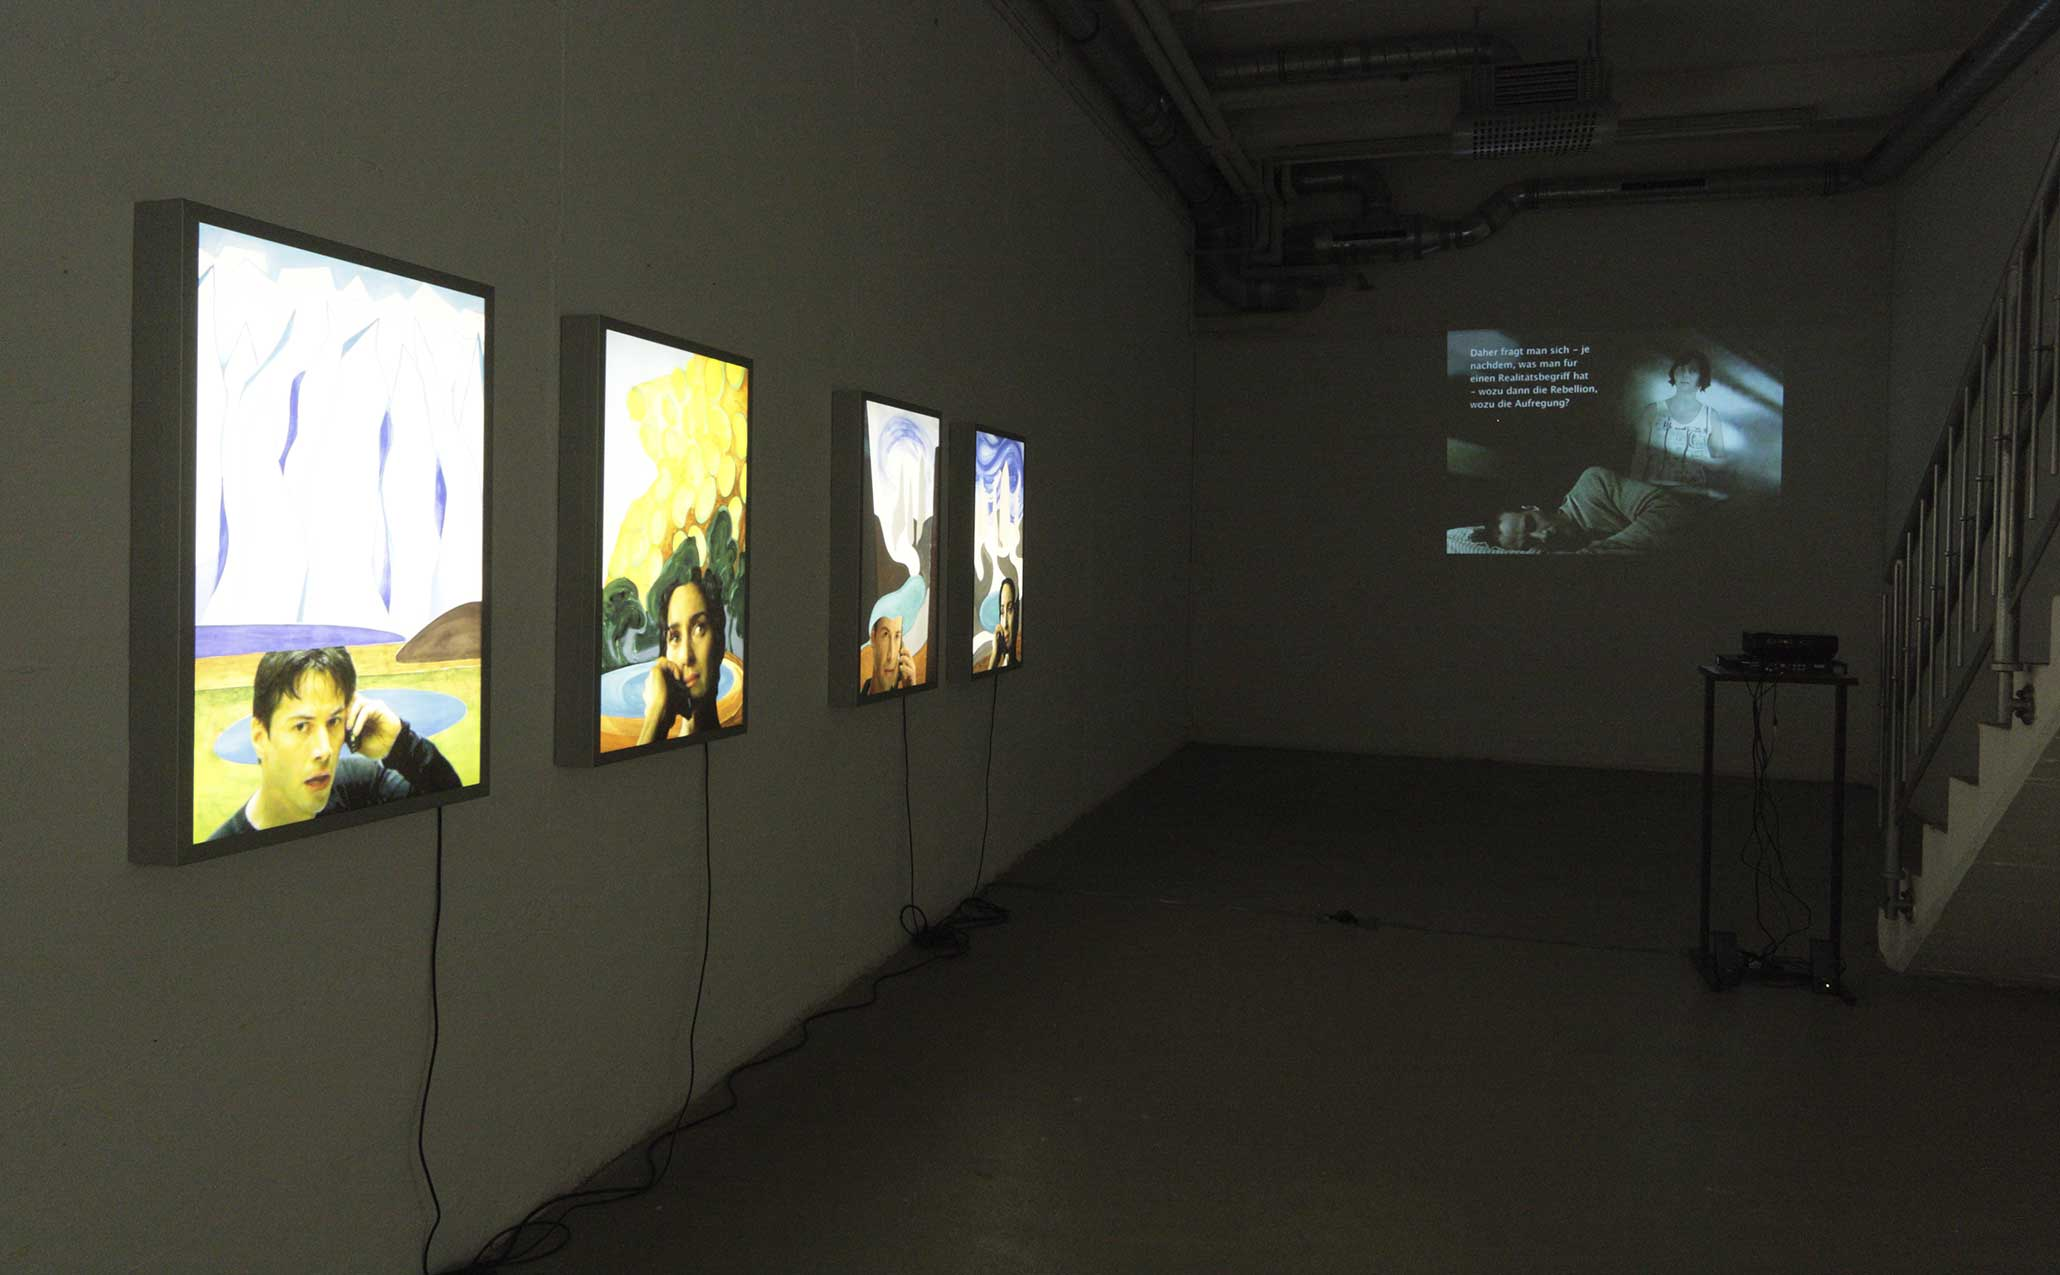 Speeded Up Flags and Slowed Down Heroes, solo show, Kunstverein Rhein-Sieg, Siegburg, DE, 2009. View: 'Patagonia' (2009), 'Virtual Therapy' (2007).